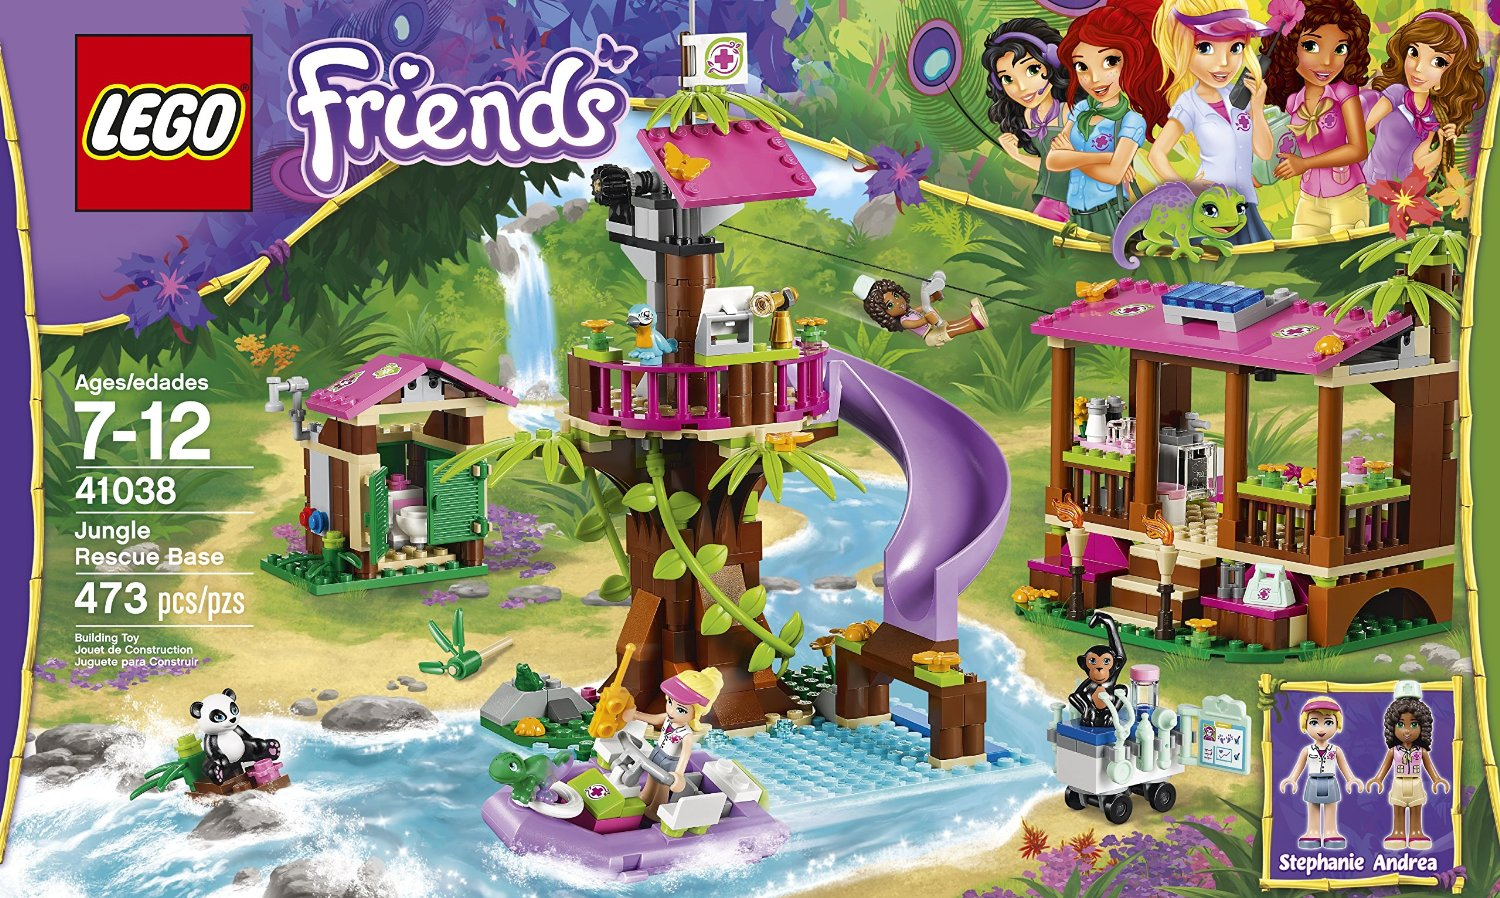 Shopping For LEGO Friends Jungle Rescue Base 41038 ...